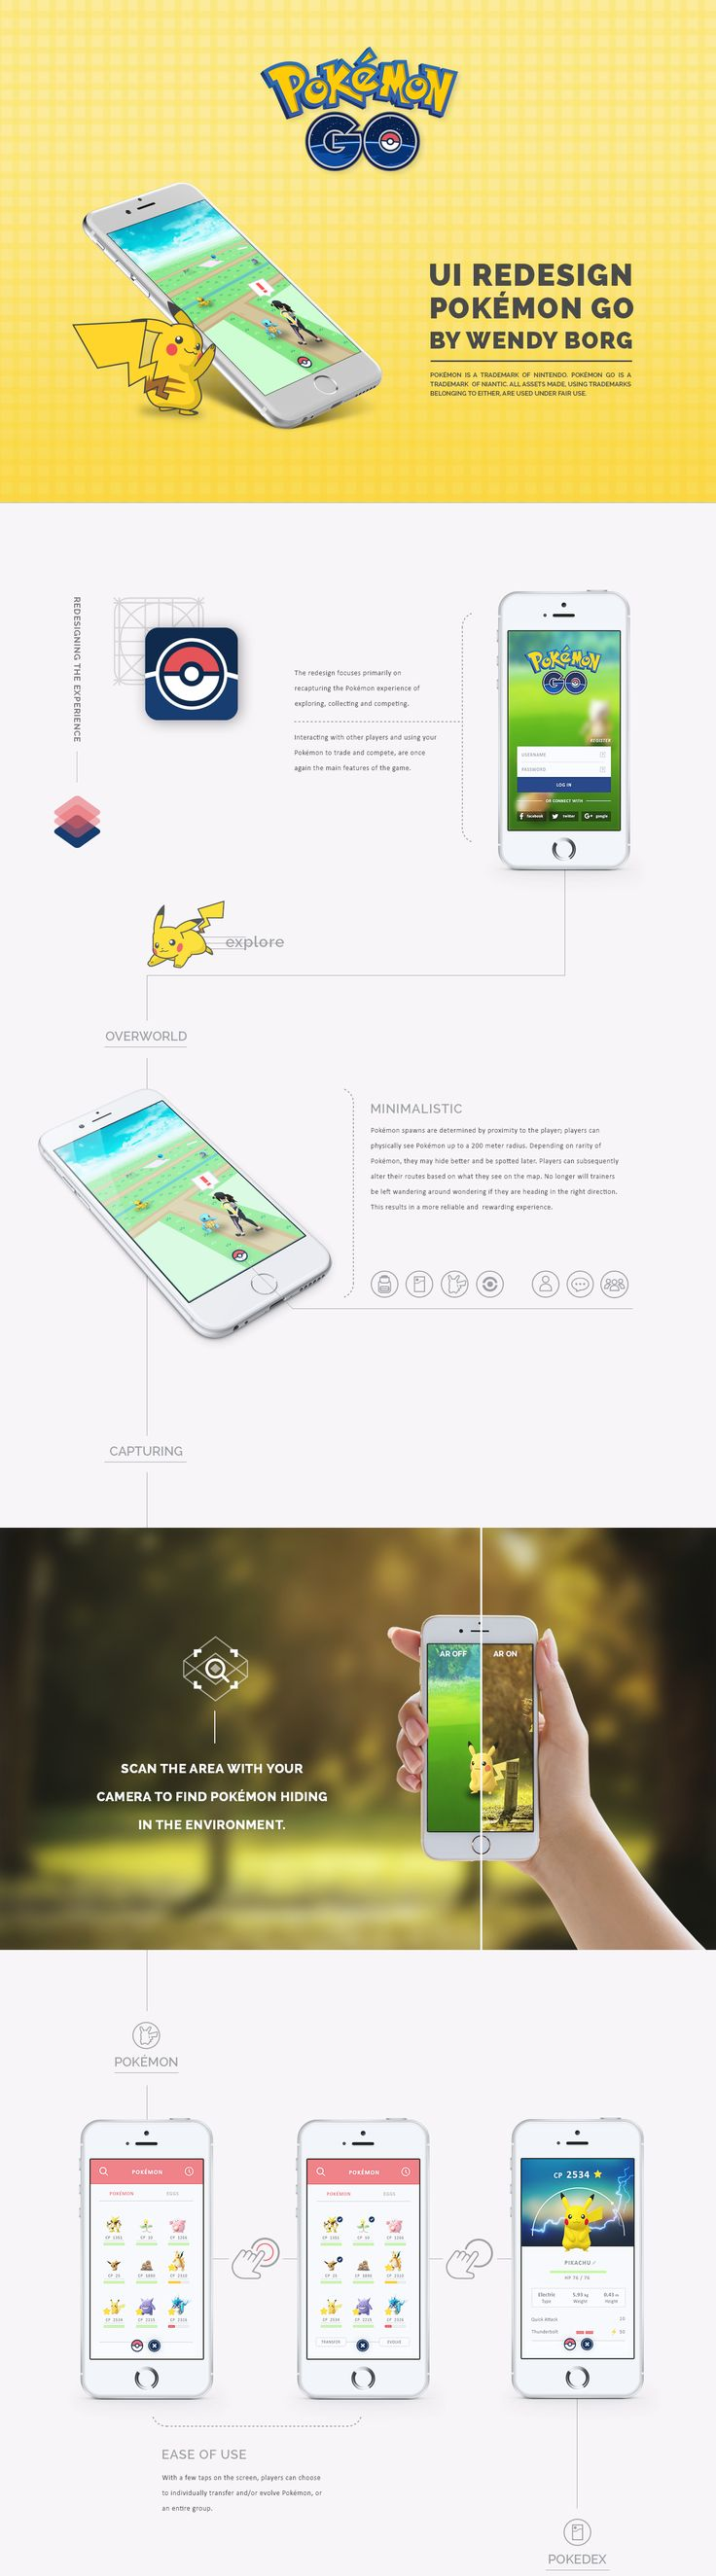 Pokémon GO - UI Redesign on Behance